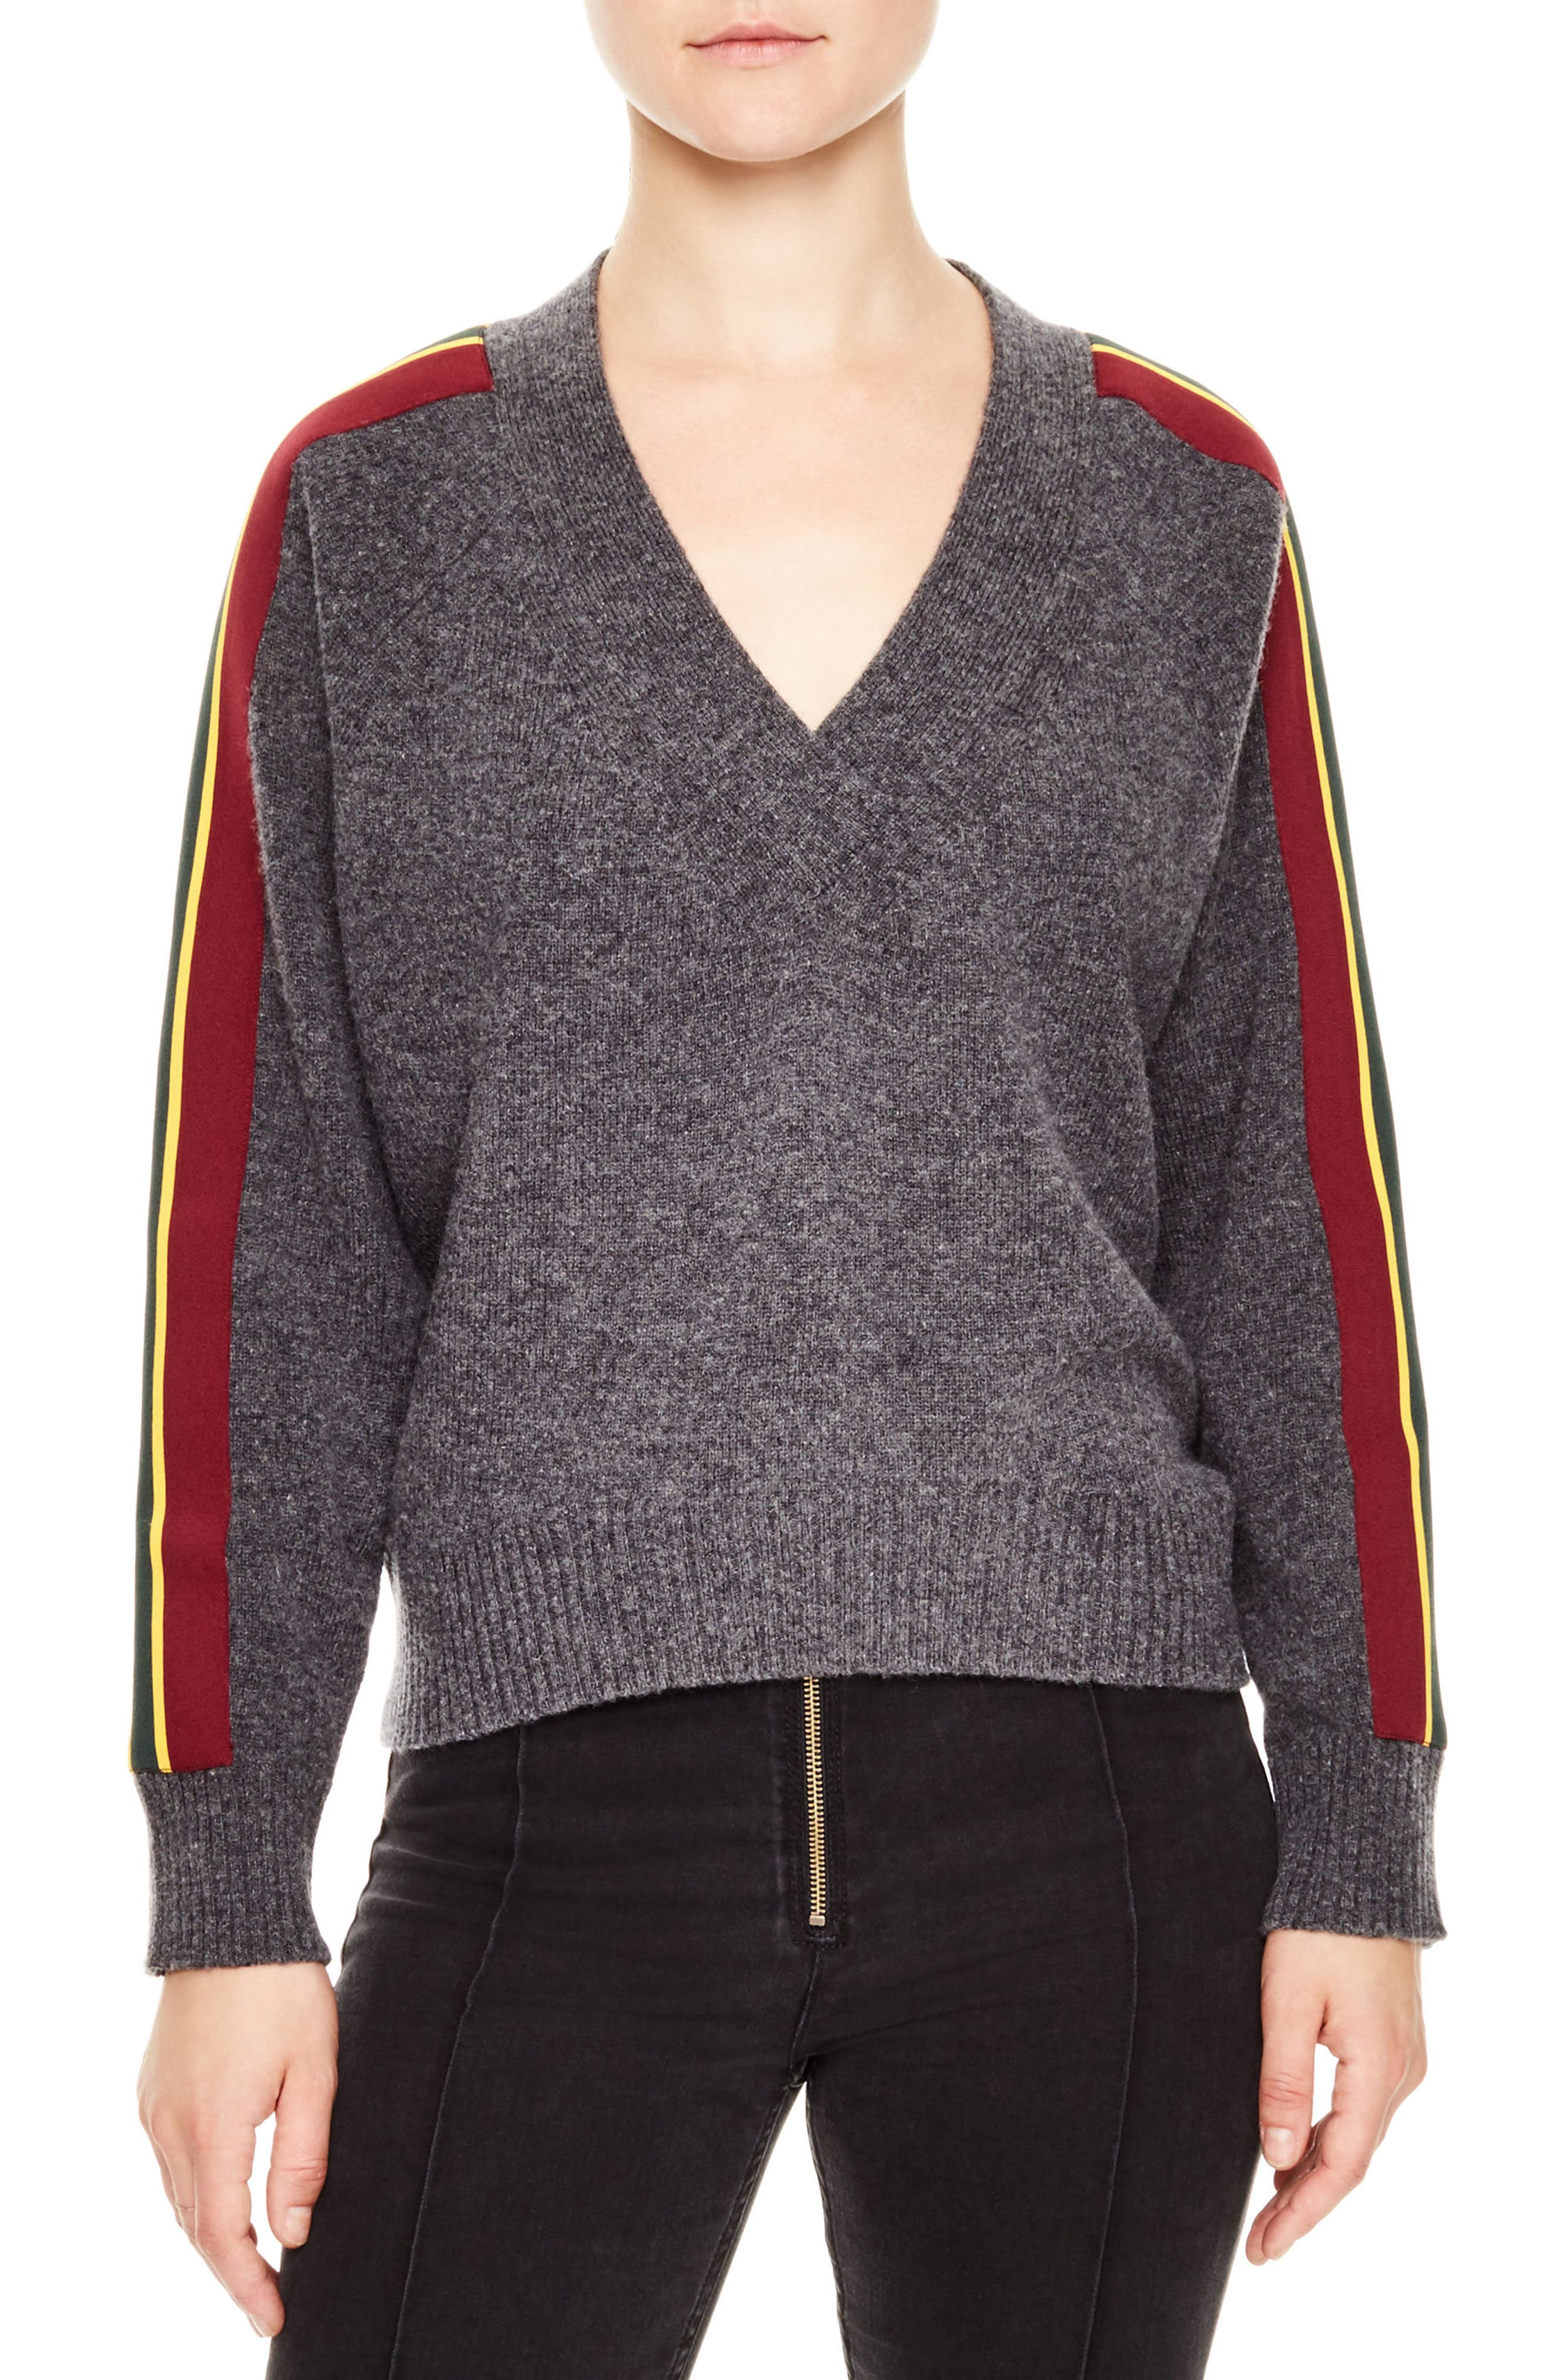 Artic Wool Blend Sweater,                             Main thumbnail 1, color,                             051